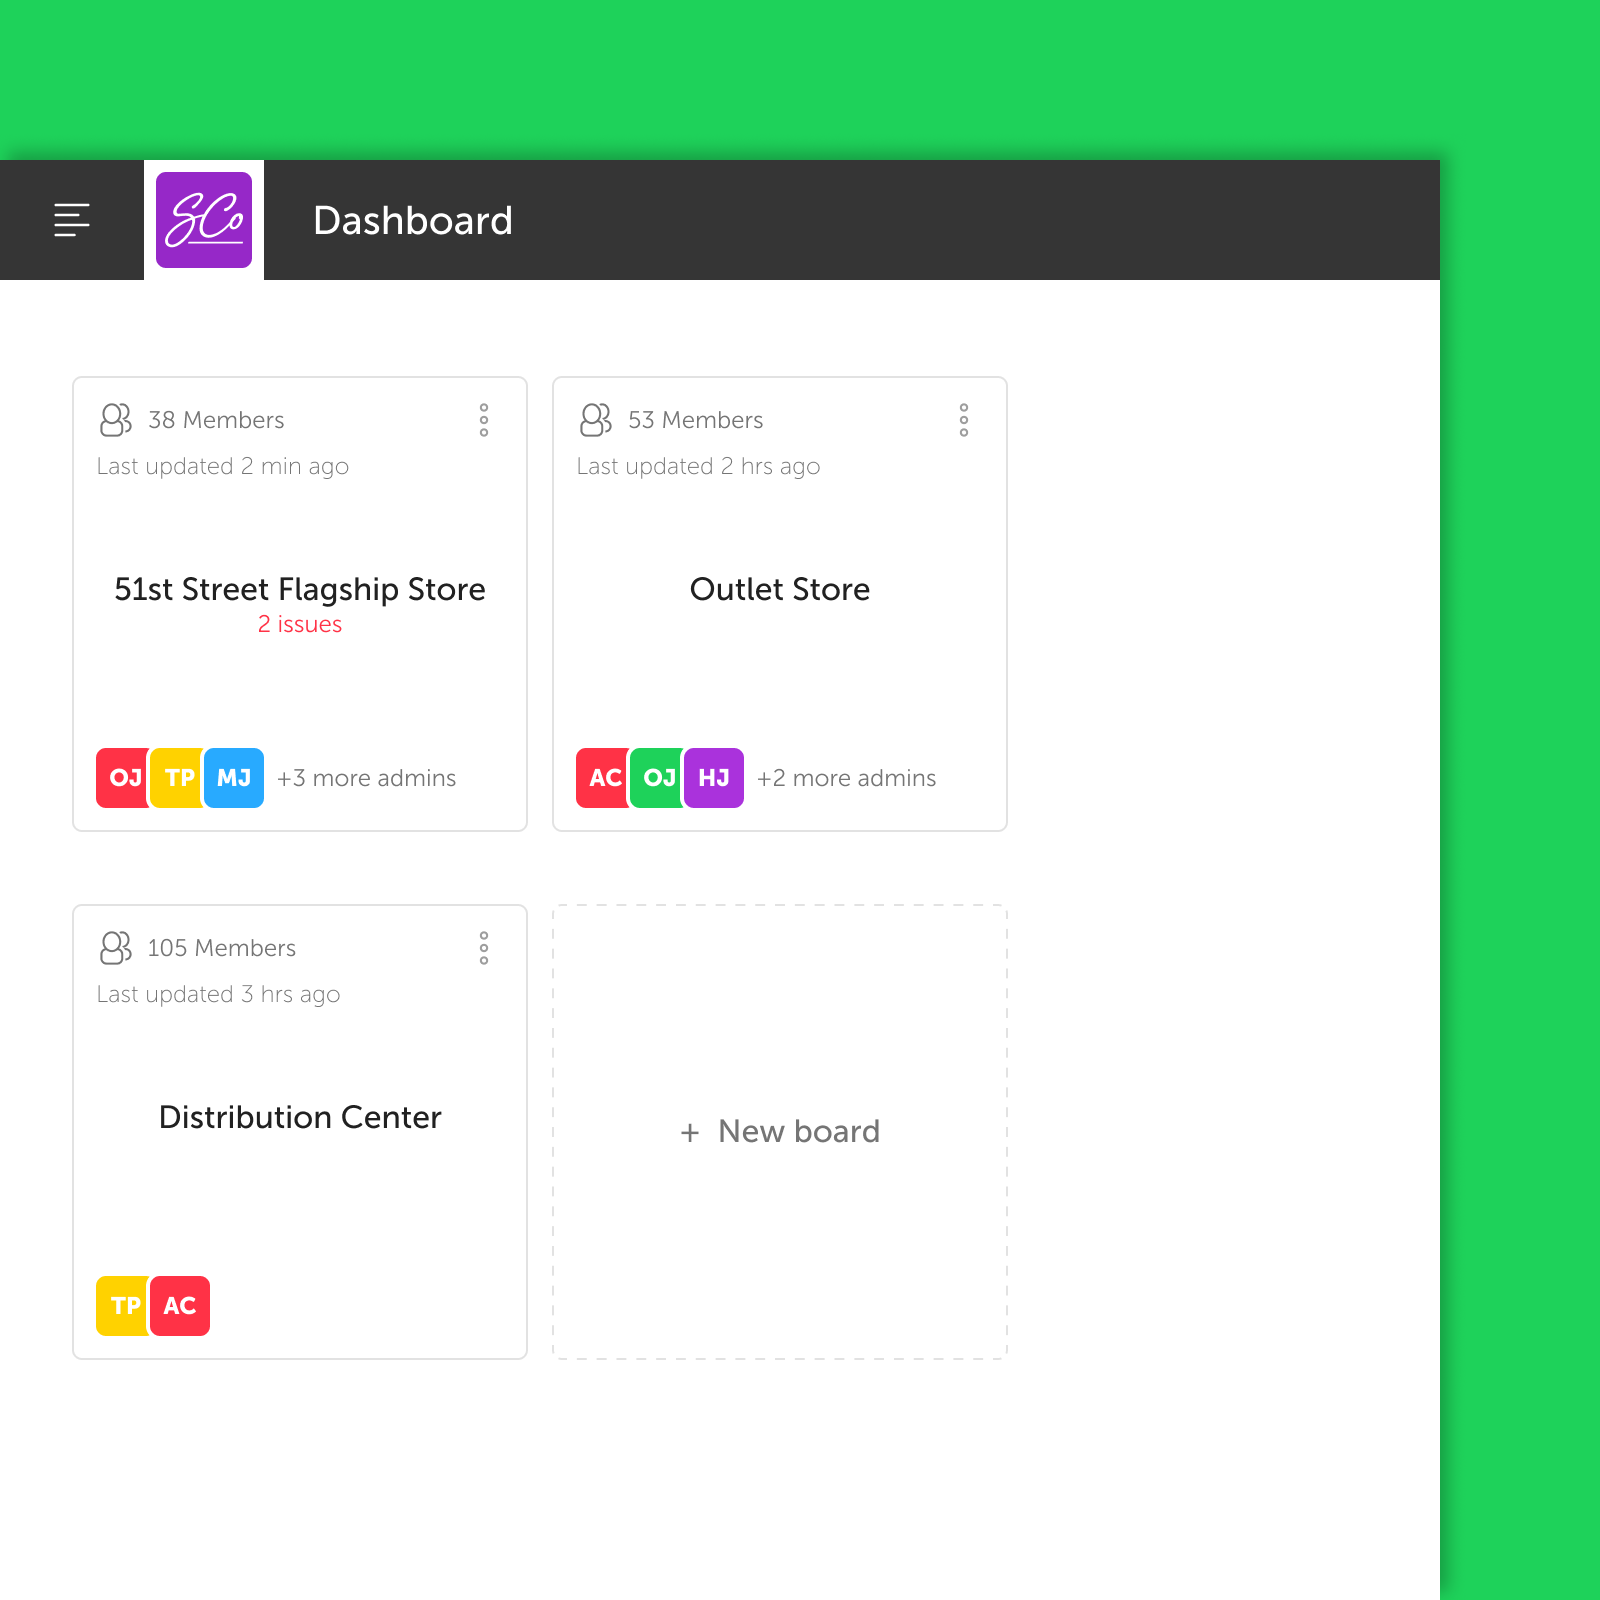 Floown Planner - Dashboard